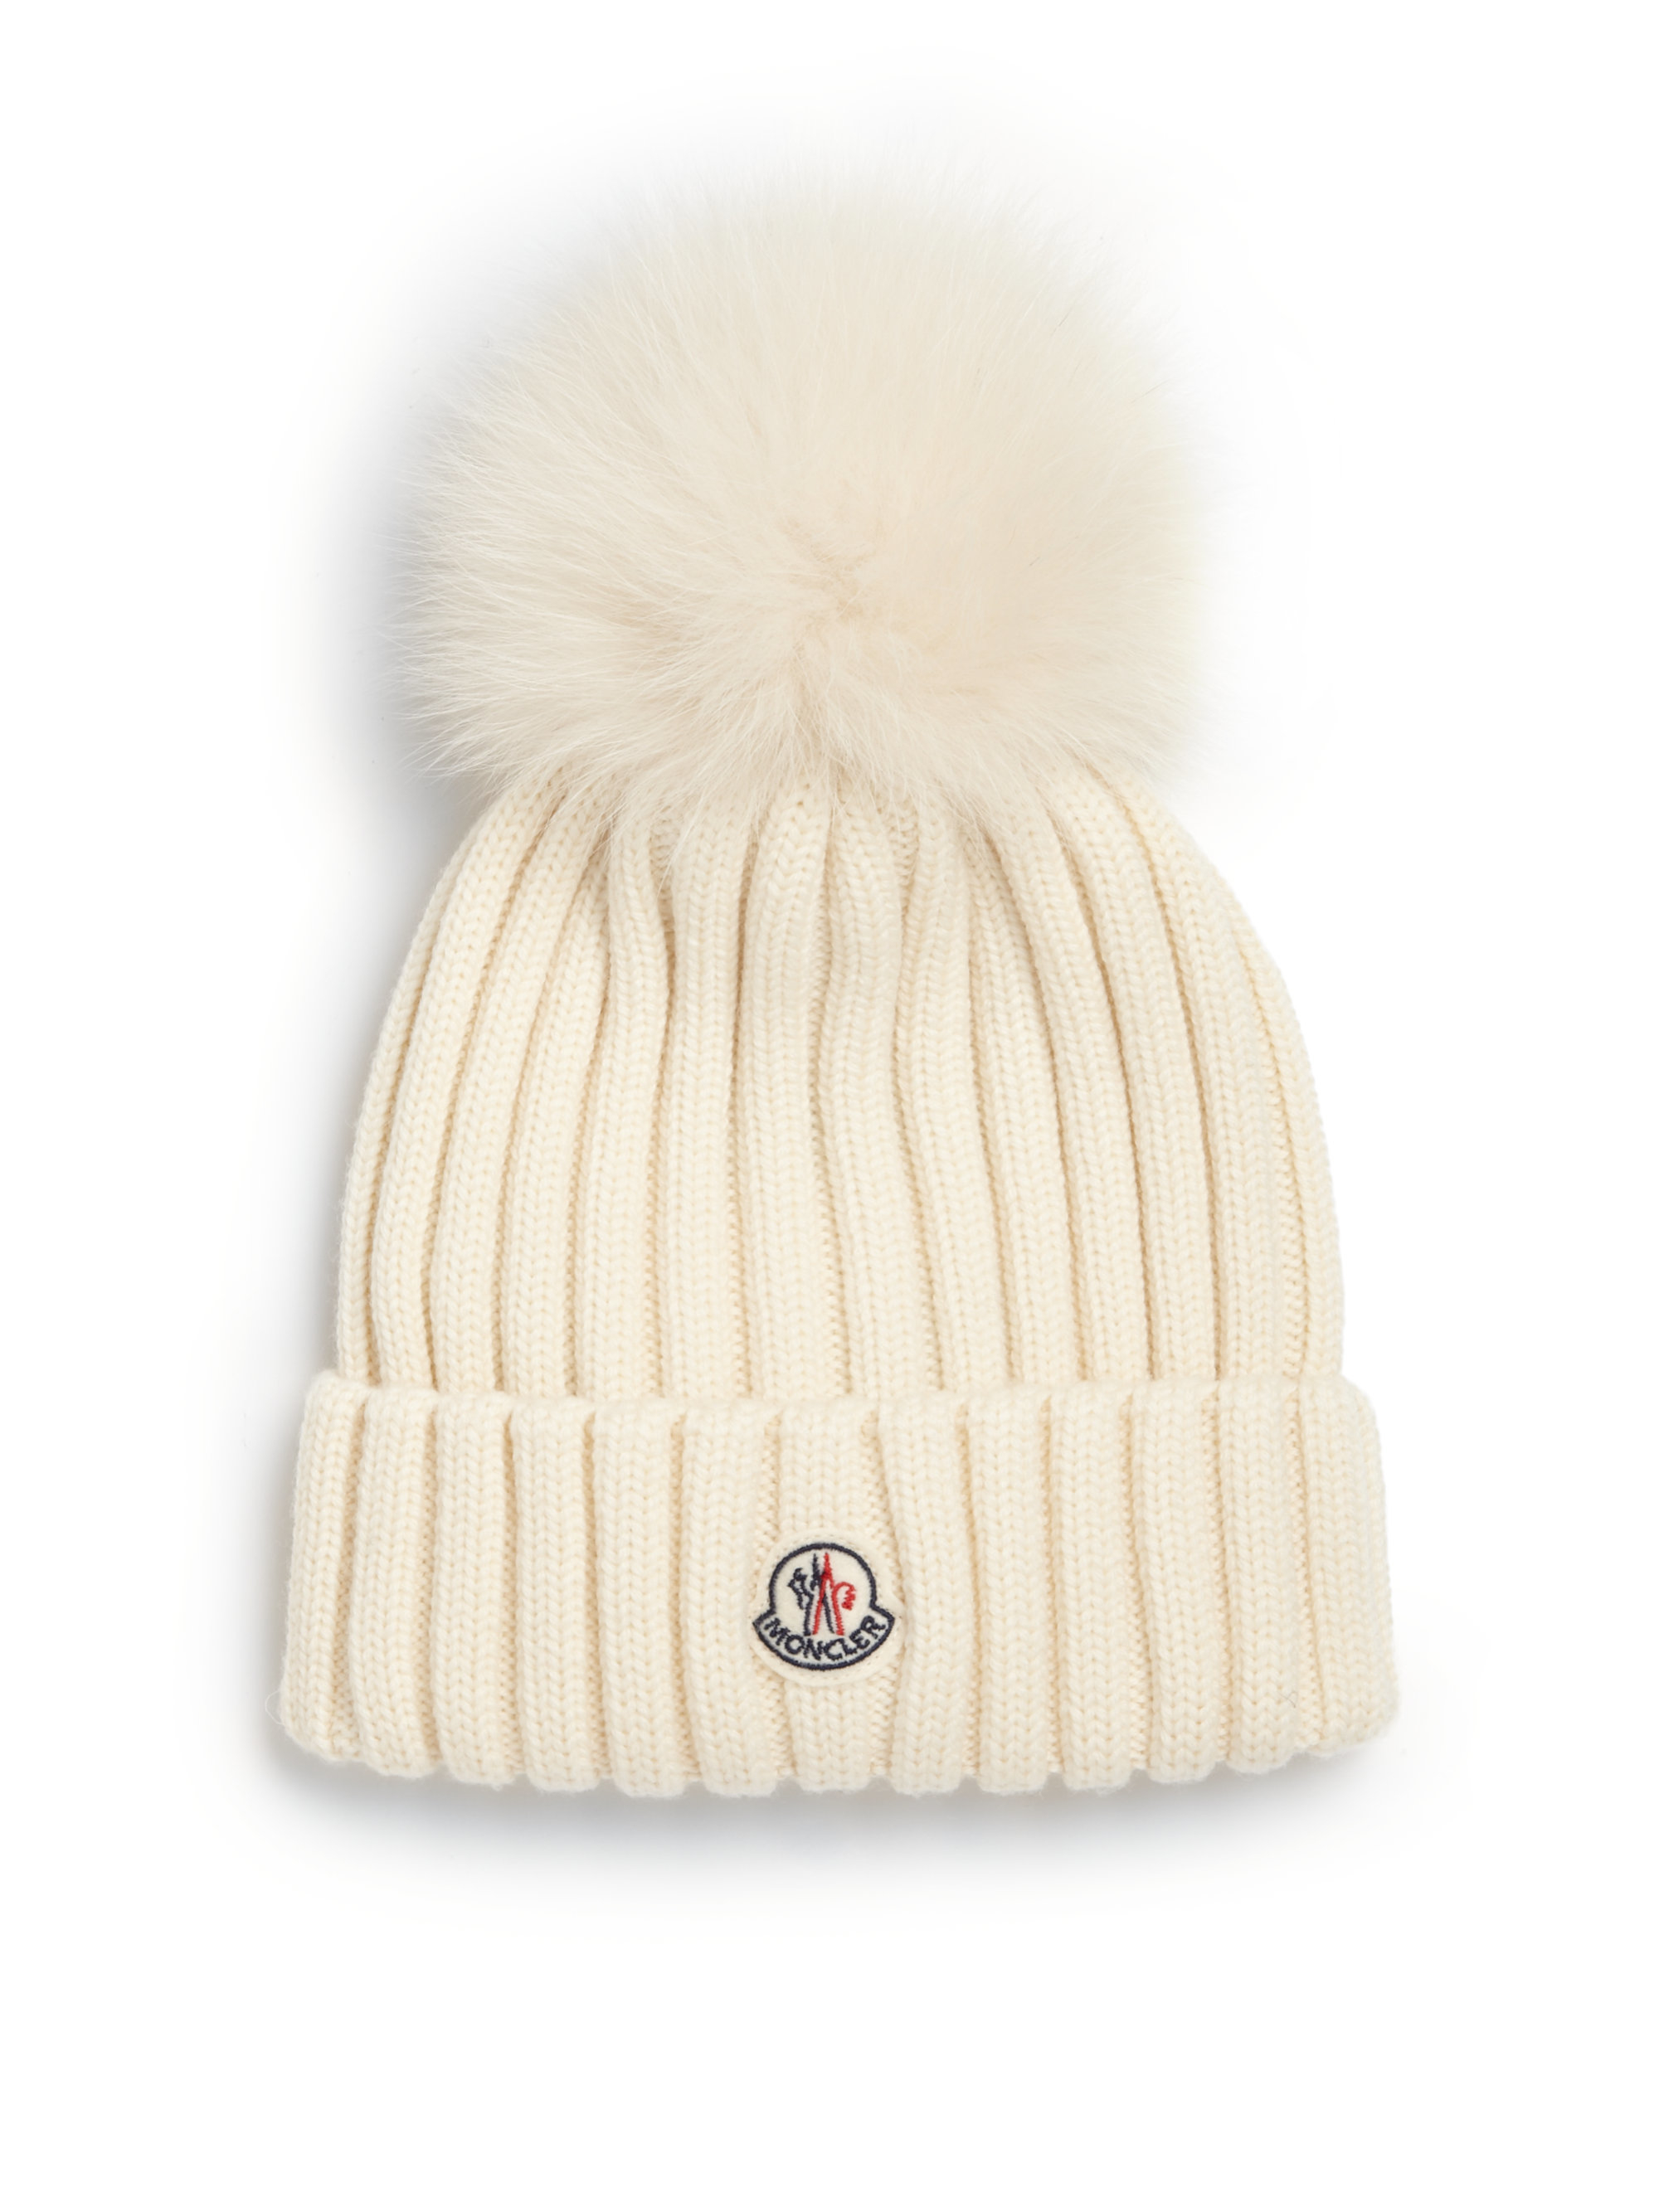 dc4d2fd20 moncler mens beanie hat | Sheffield Senators